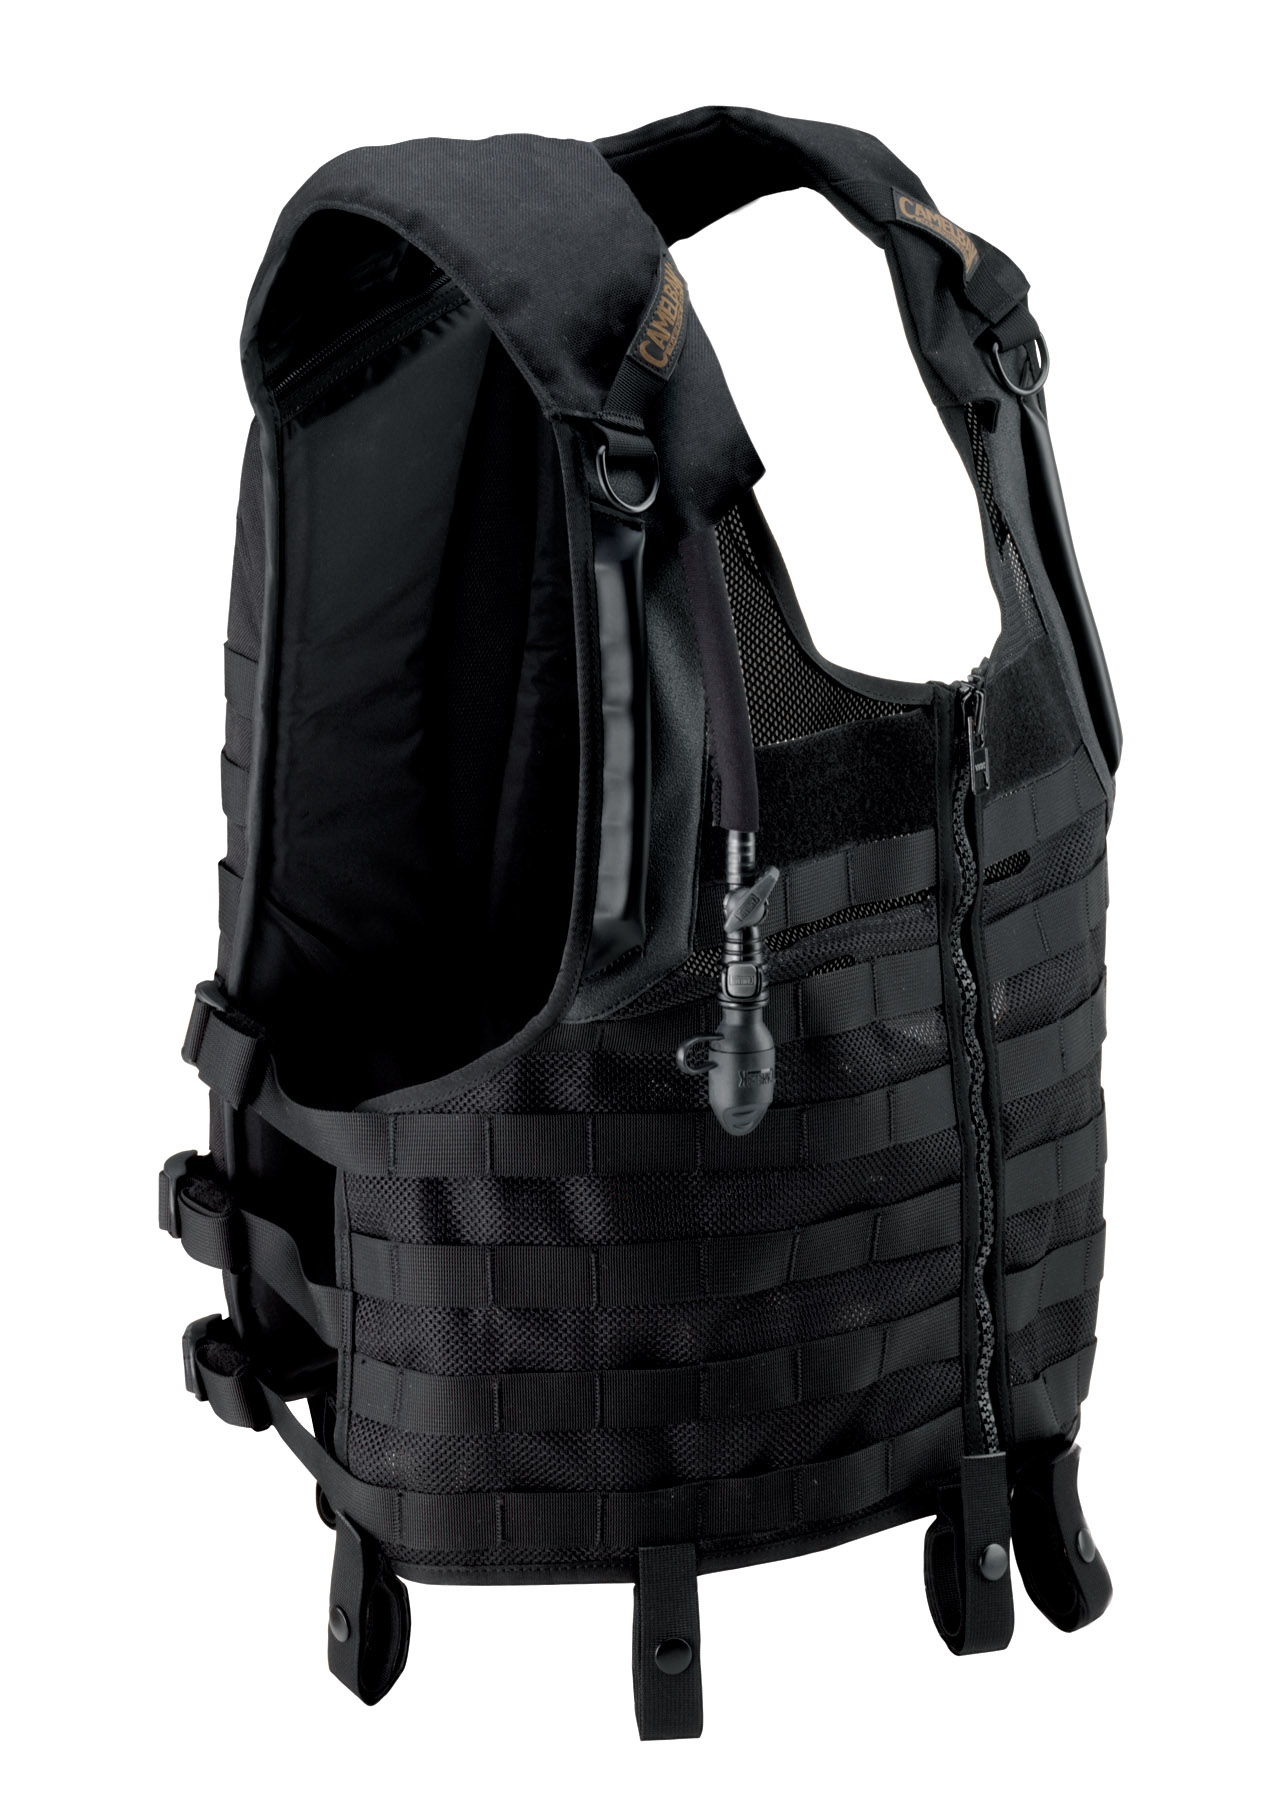 60436 TacticalVest Front <!  :en  >Camelbak Delta 5 Tactical Vest and ST 5 Tactical Pack: Latest Tactical Hydration<!  :  >